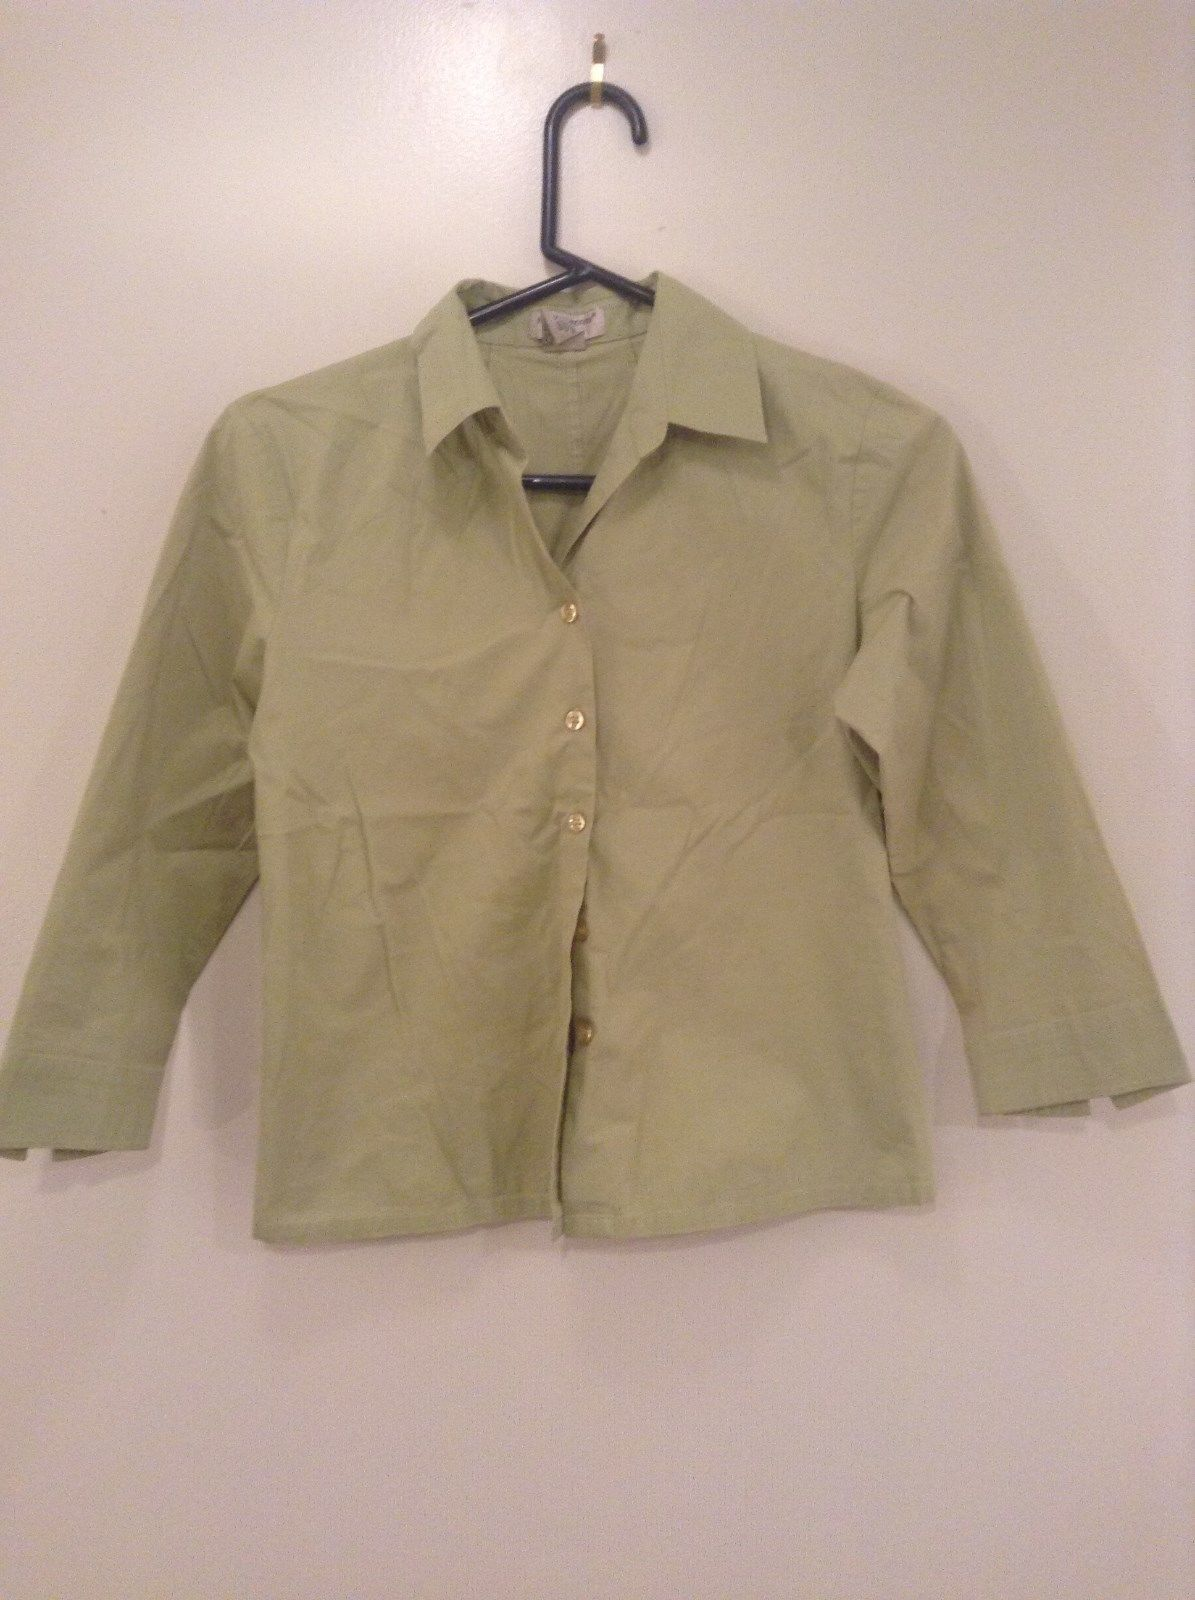 Edward Petite Stretch Green Button Up Long Sleeve Shirt Size Medium